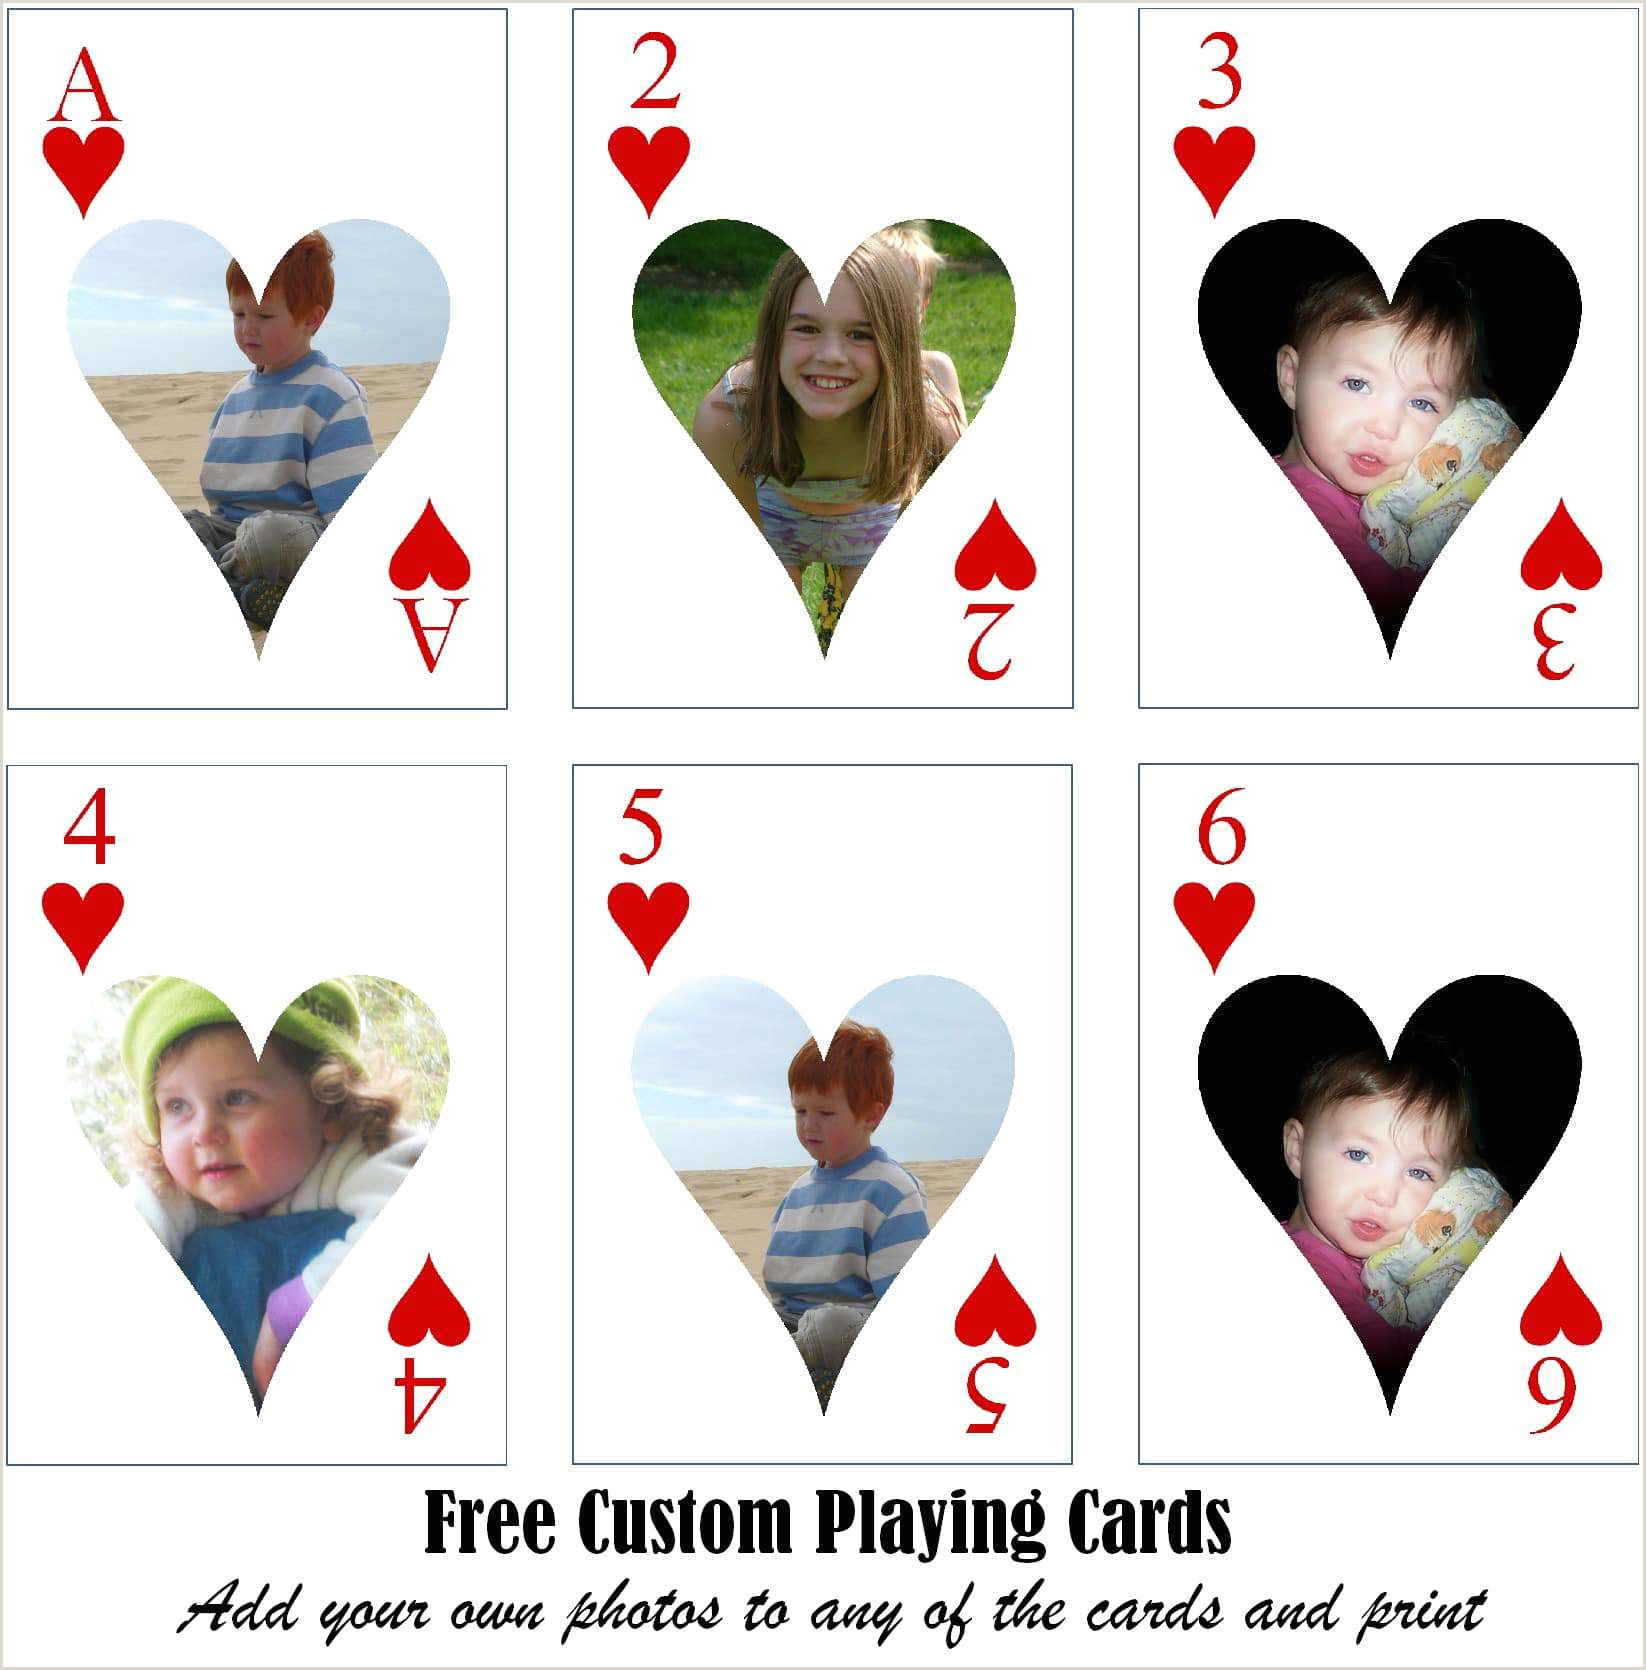 Create Your Own Playing Cards Online Free Free Printable Custom Playing Cards